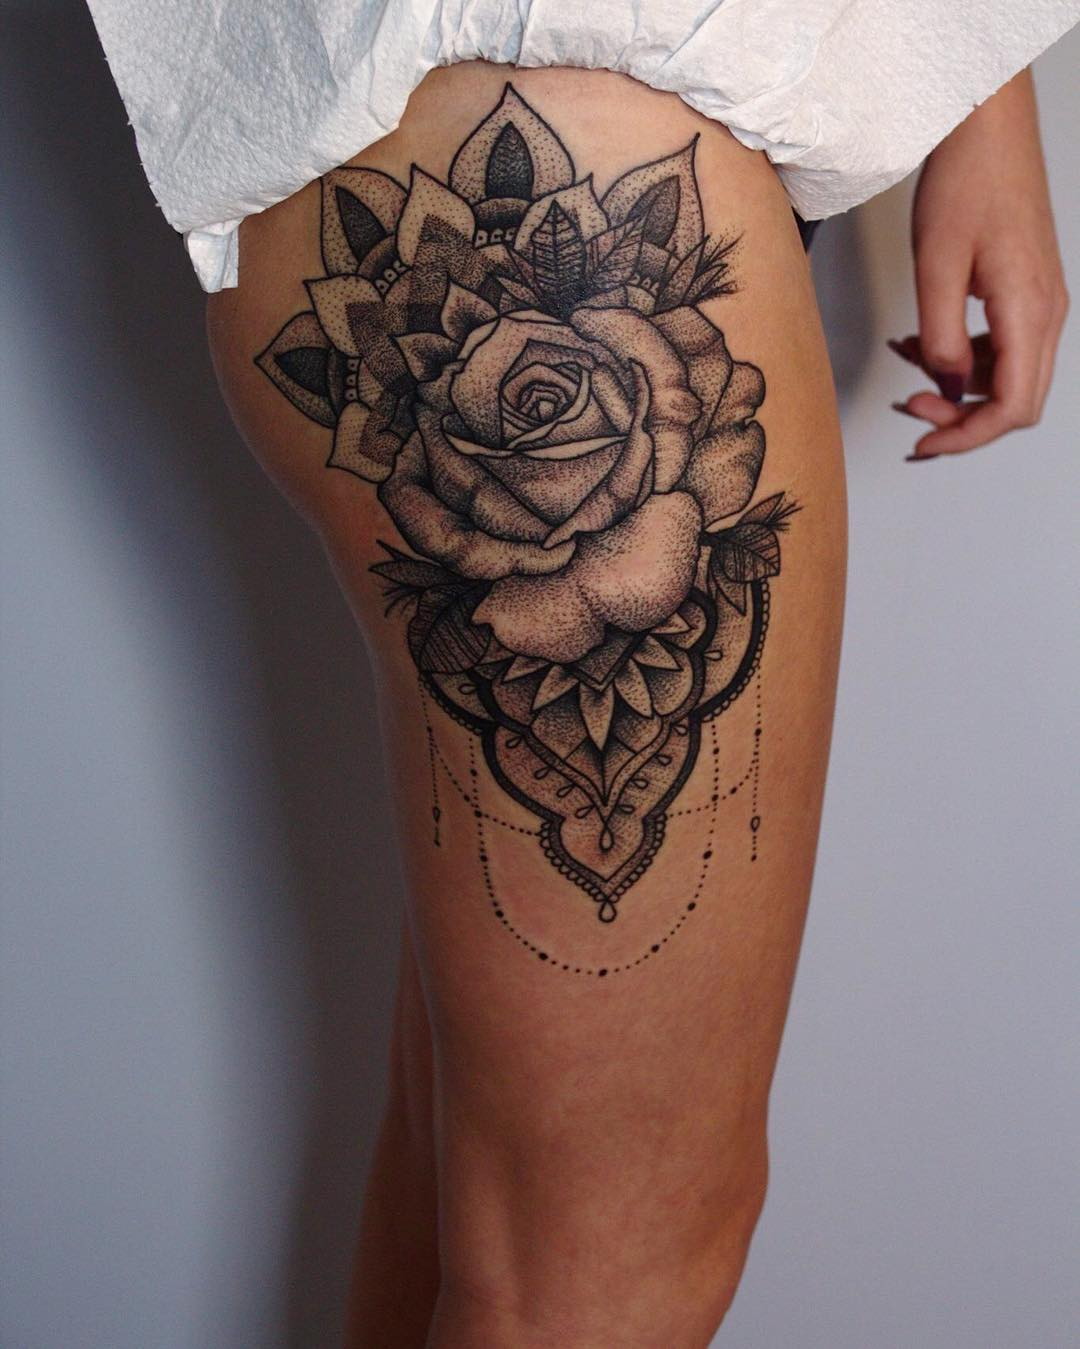 rose-tattoo-large-thigh-design - Lava360